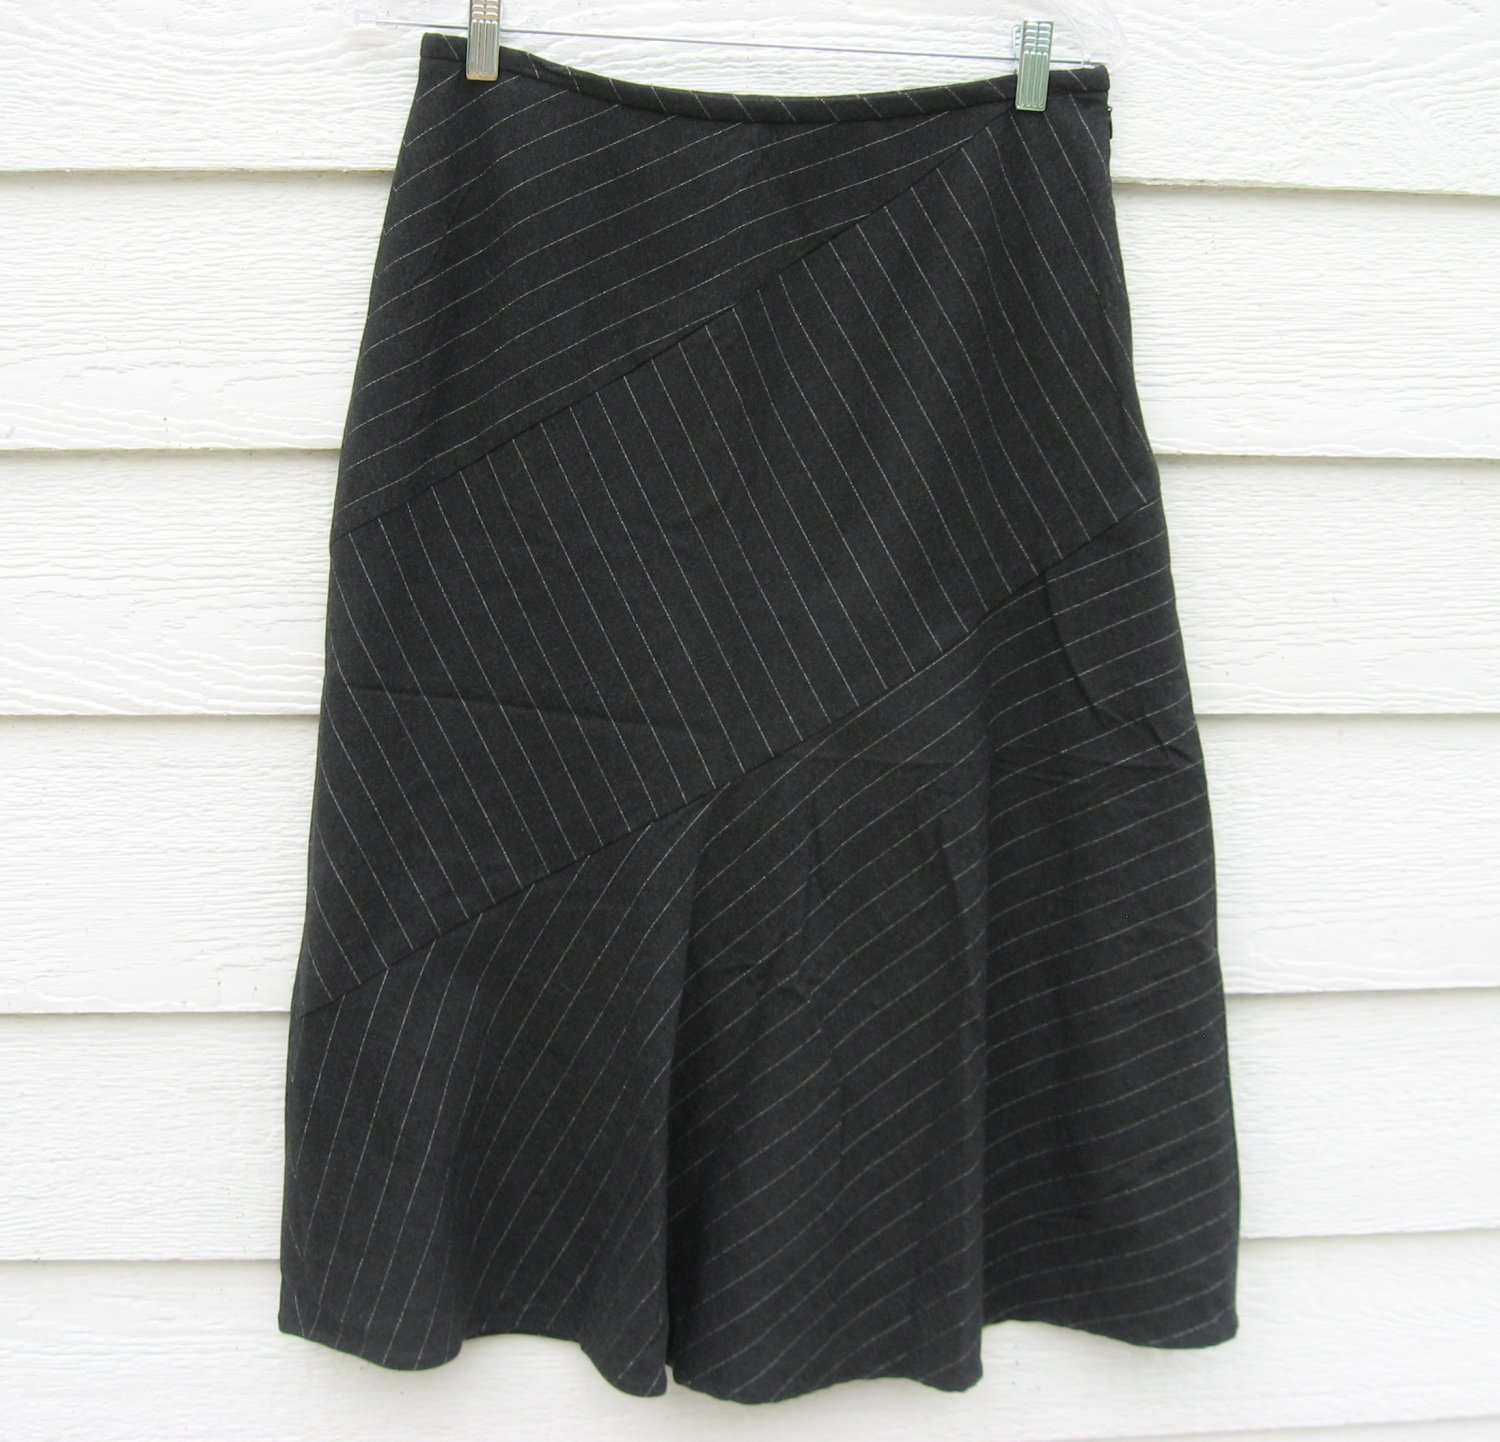 Josephine Chause Black Skirt 4 30 Waist Silver Strip